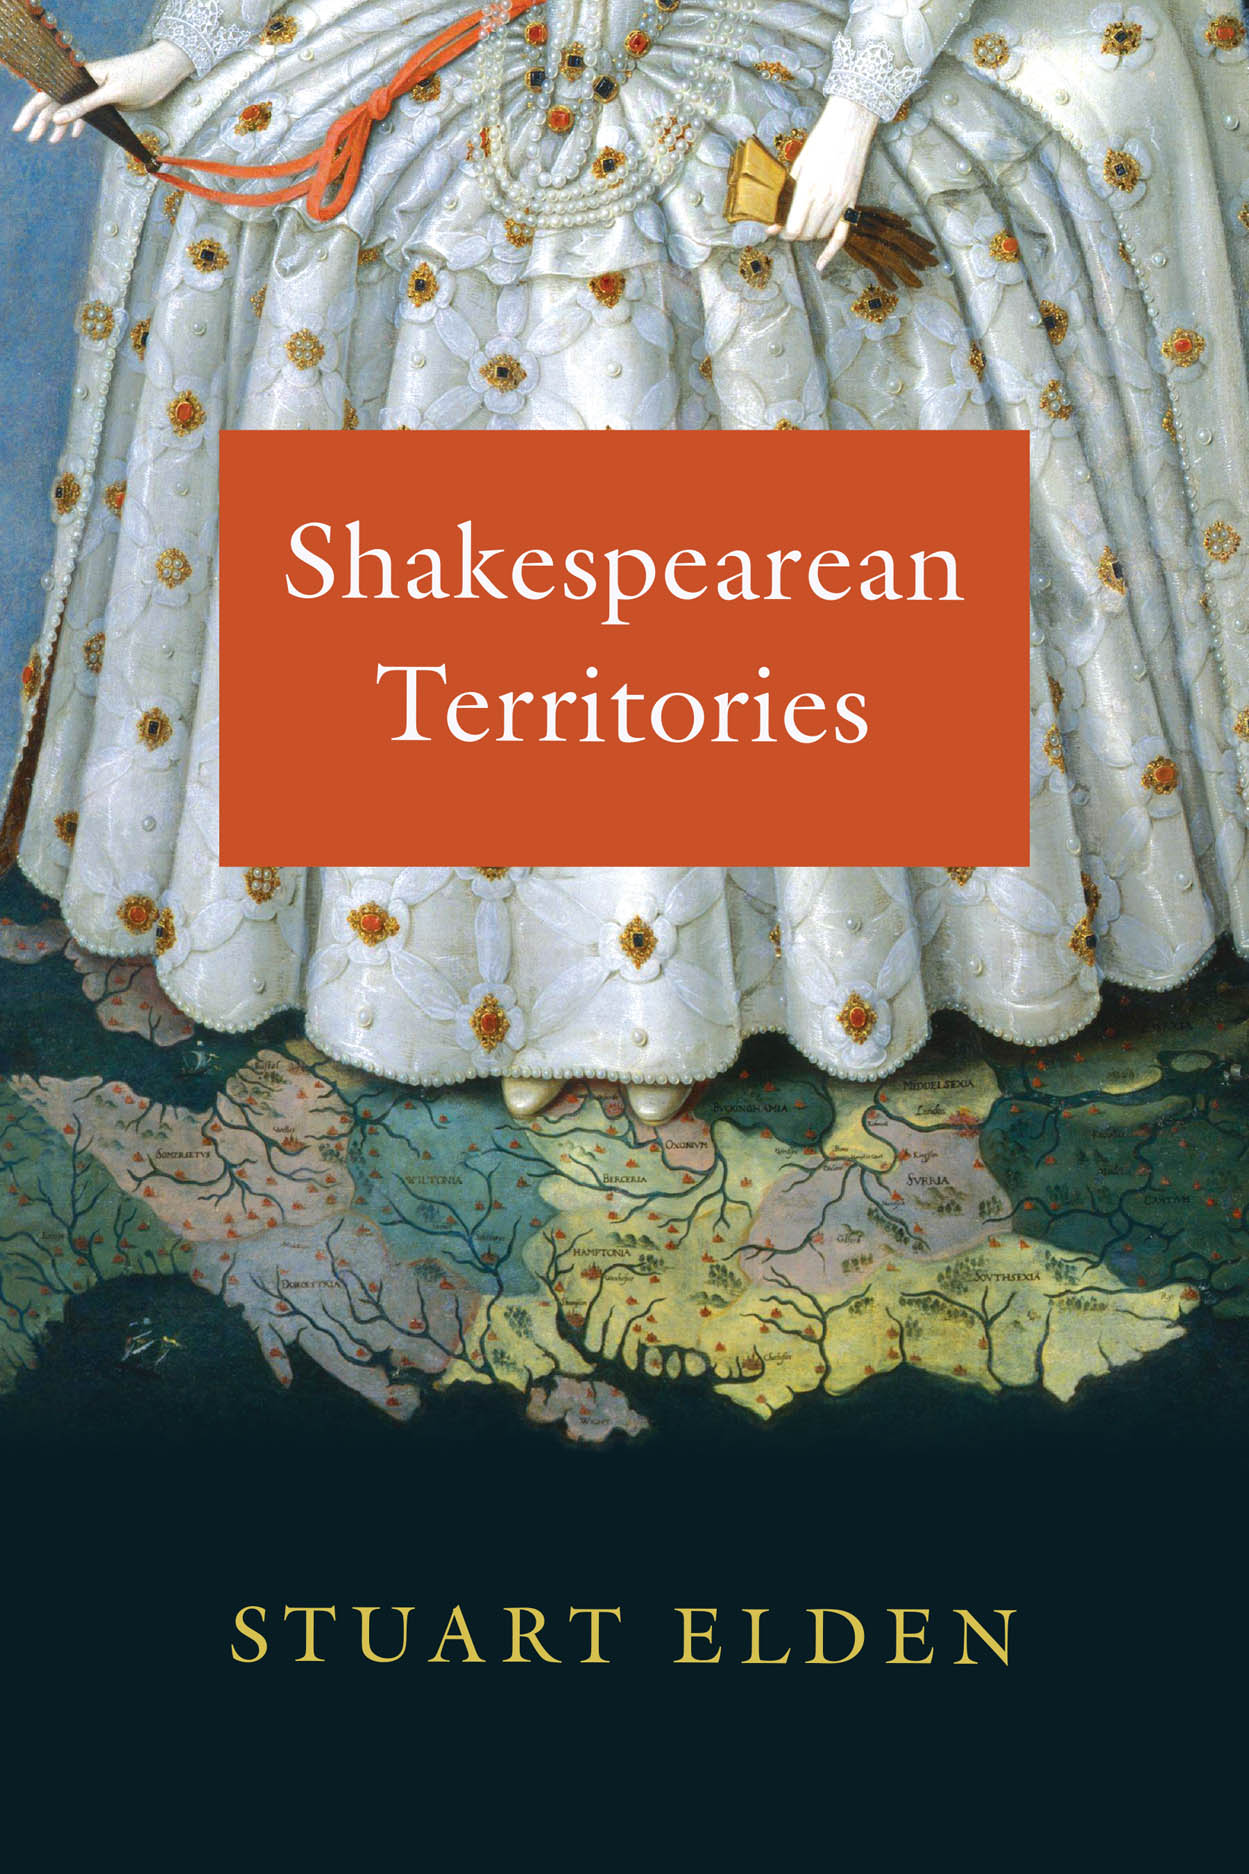 Shakespearean Territories